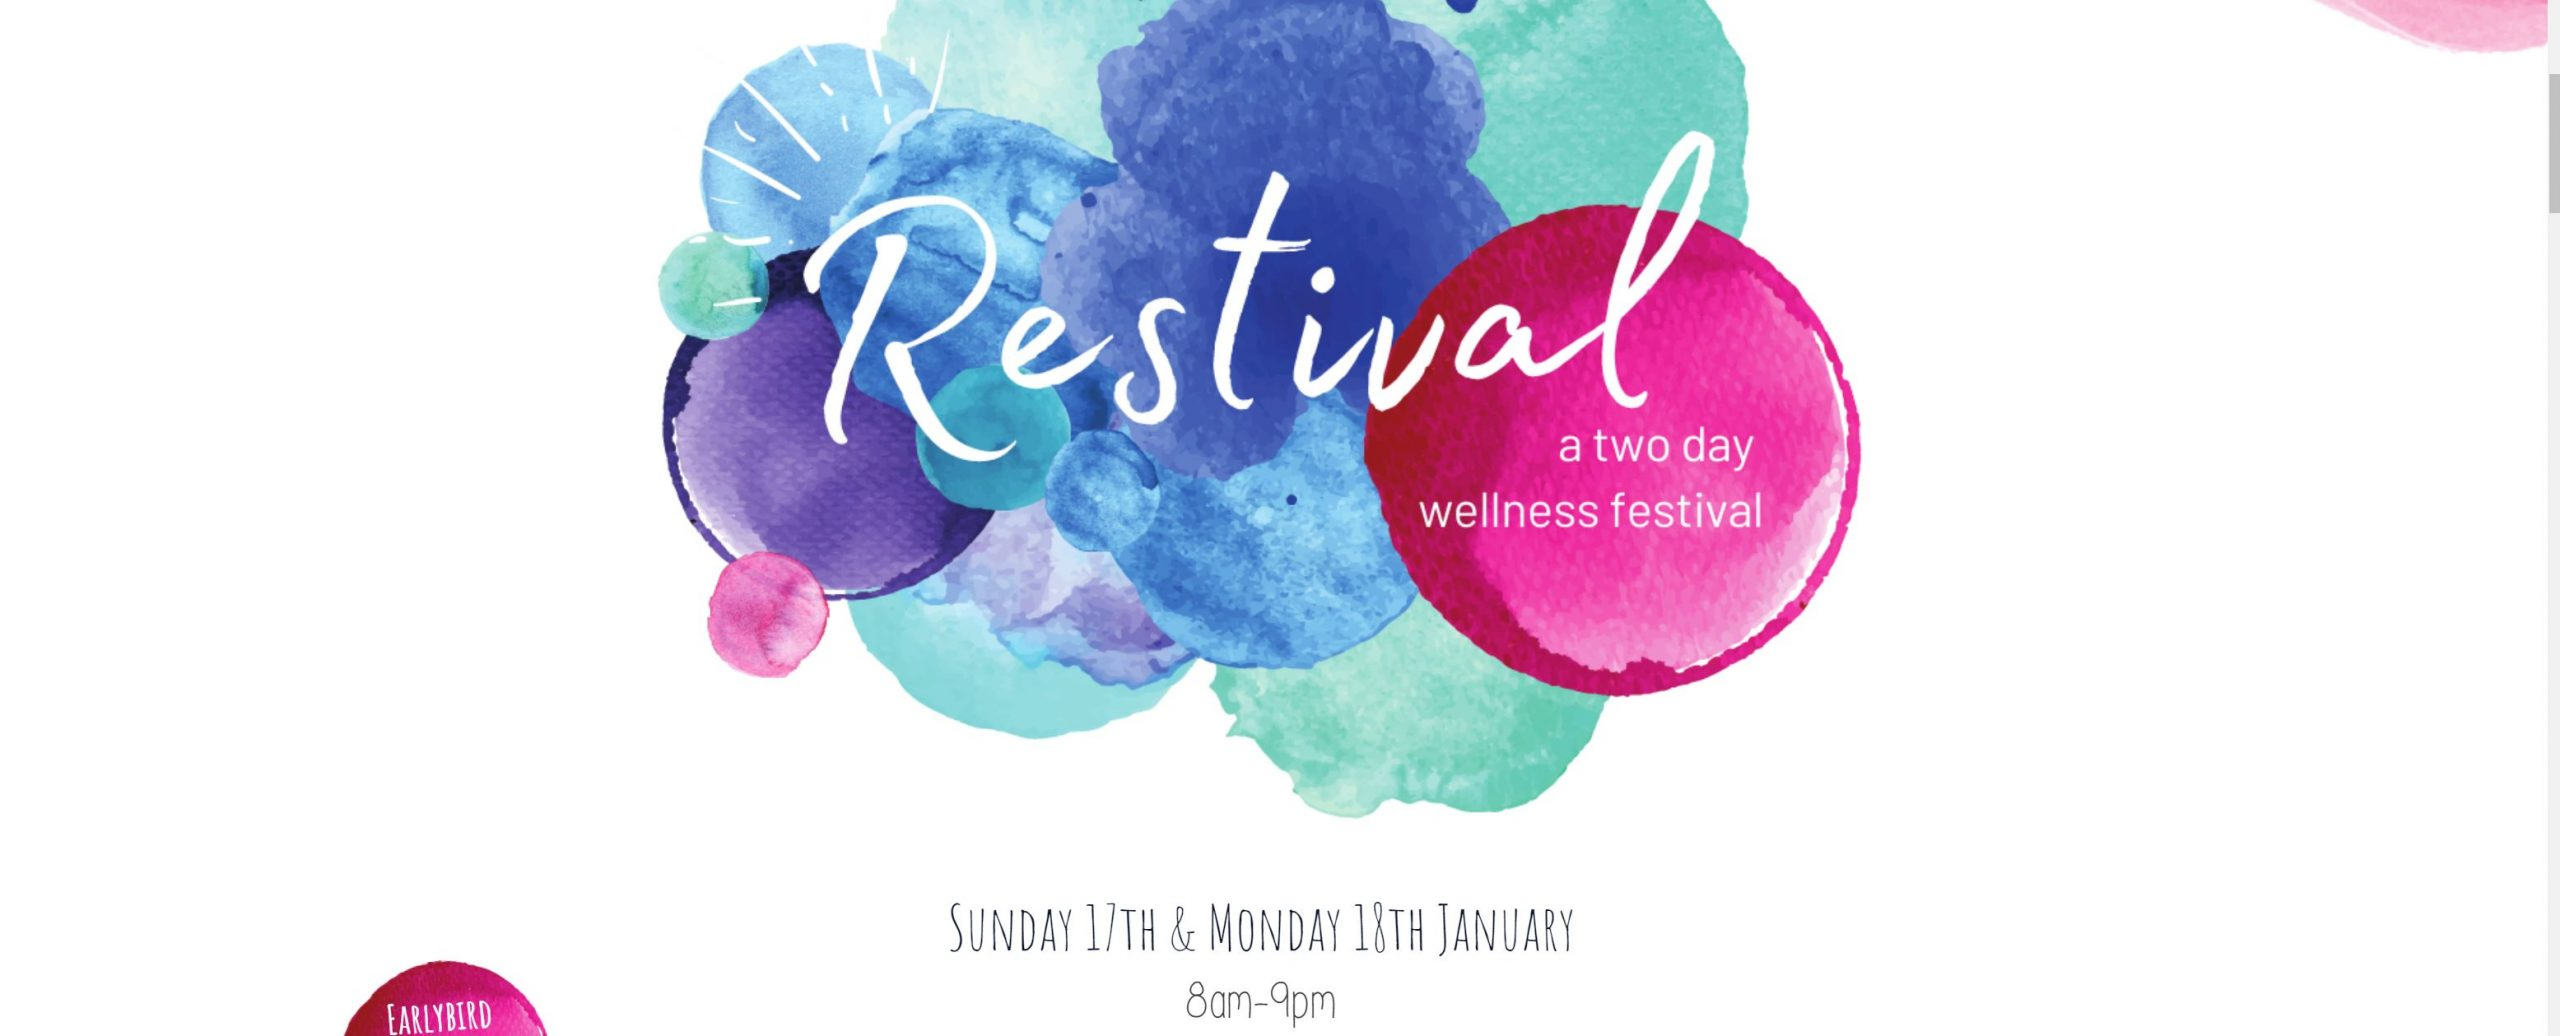 Restival 2021 – A Two Day Wellness Festival